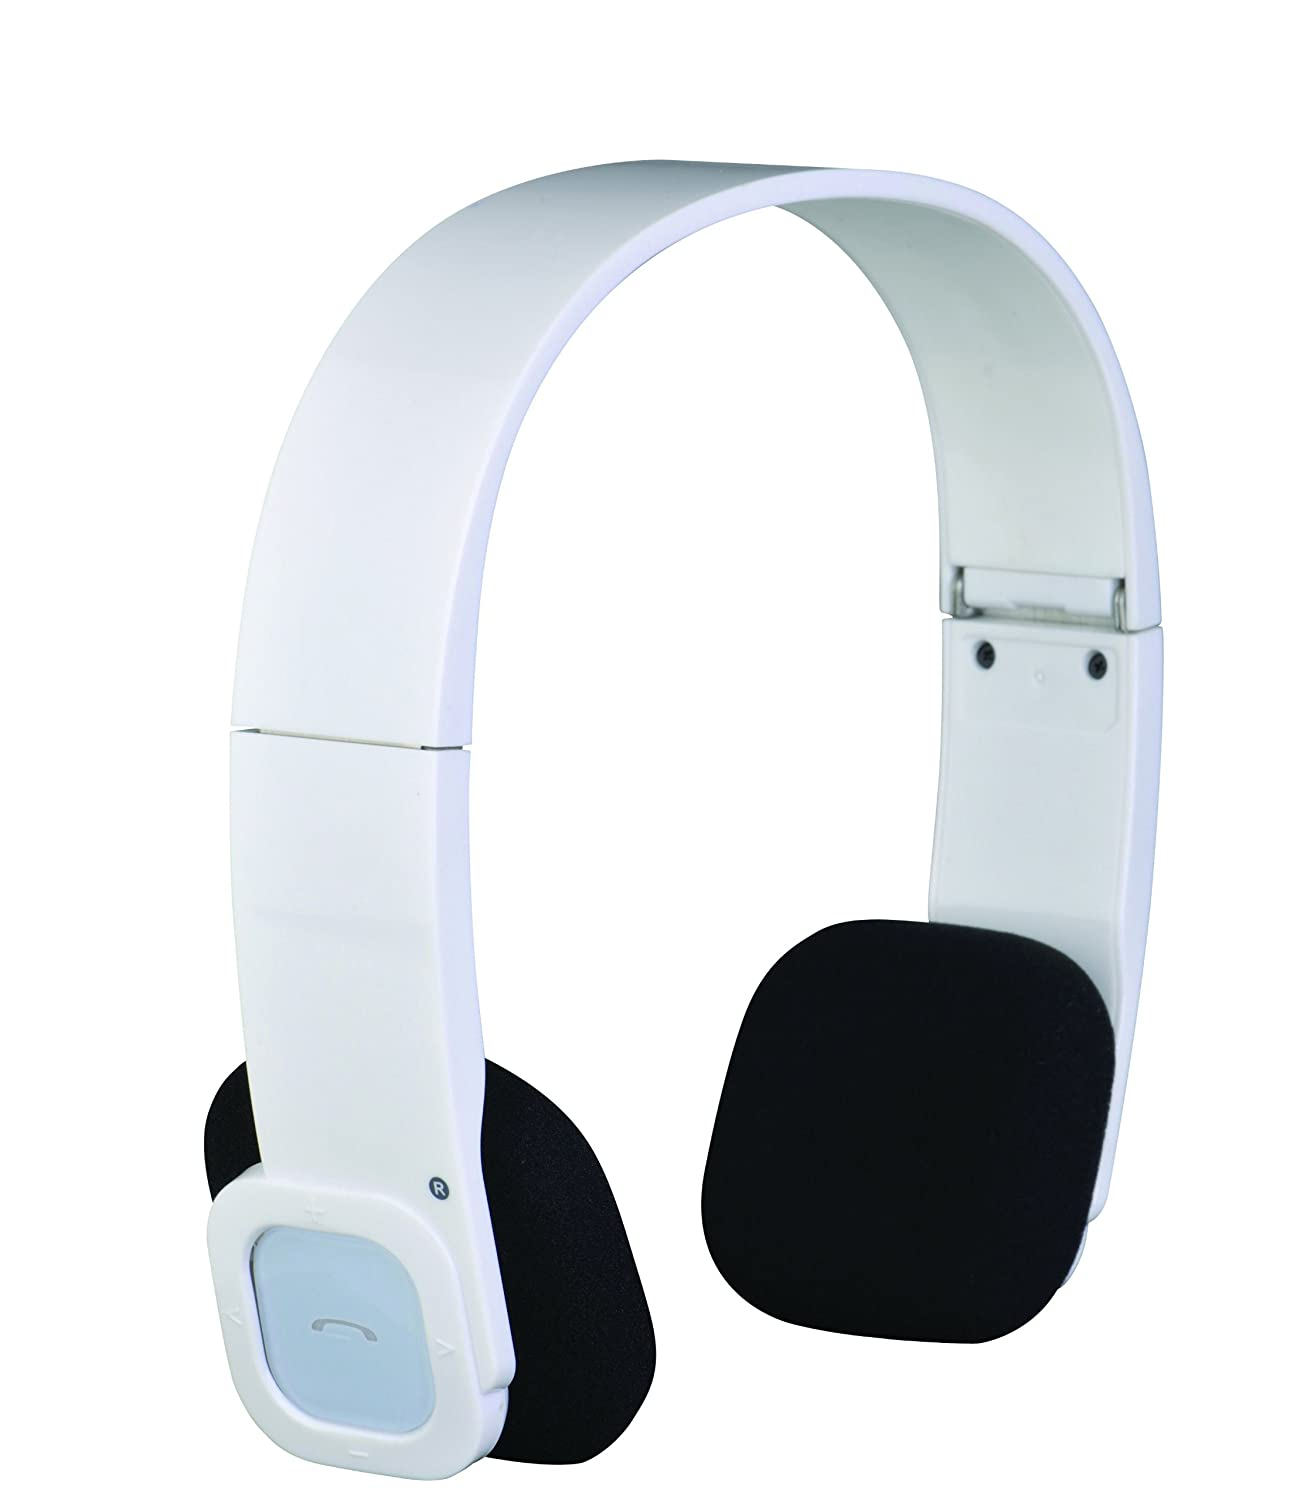 EXH 32BT Exonic Wireless Bluetooth Headphones with Touch Button Foldable Rechargeable White Ample Audio Inc.